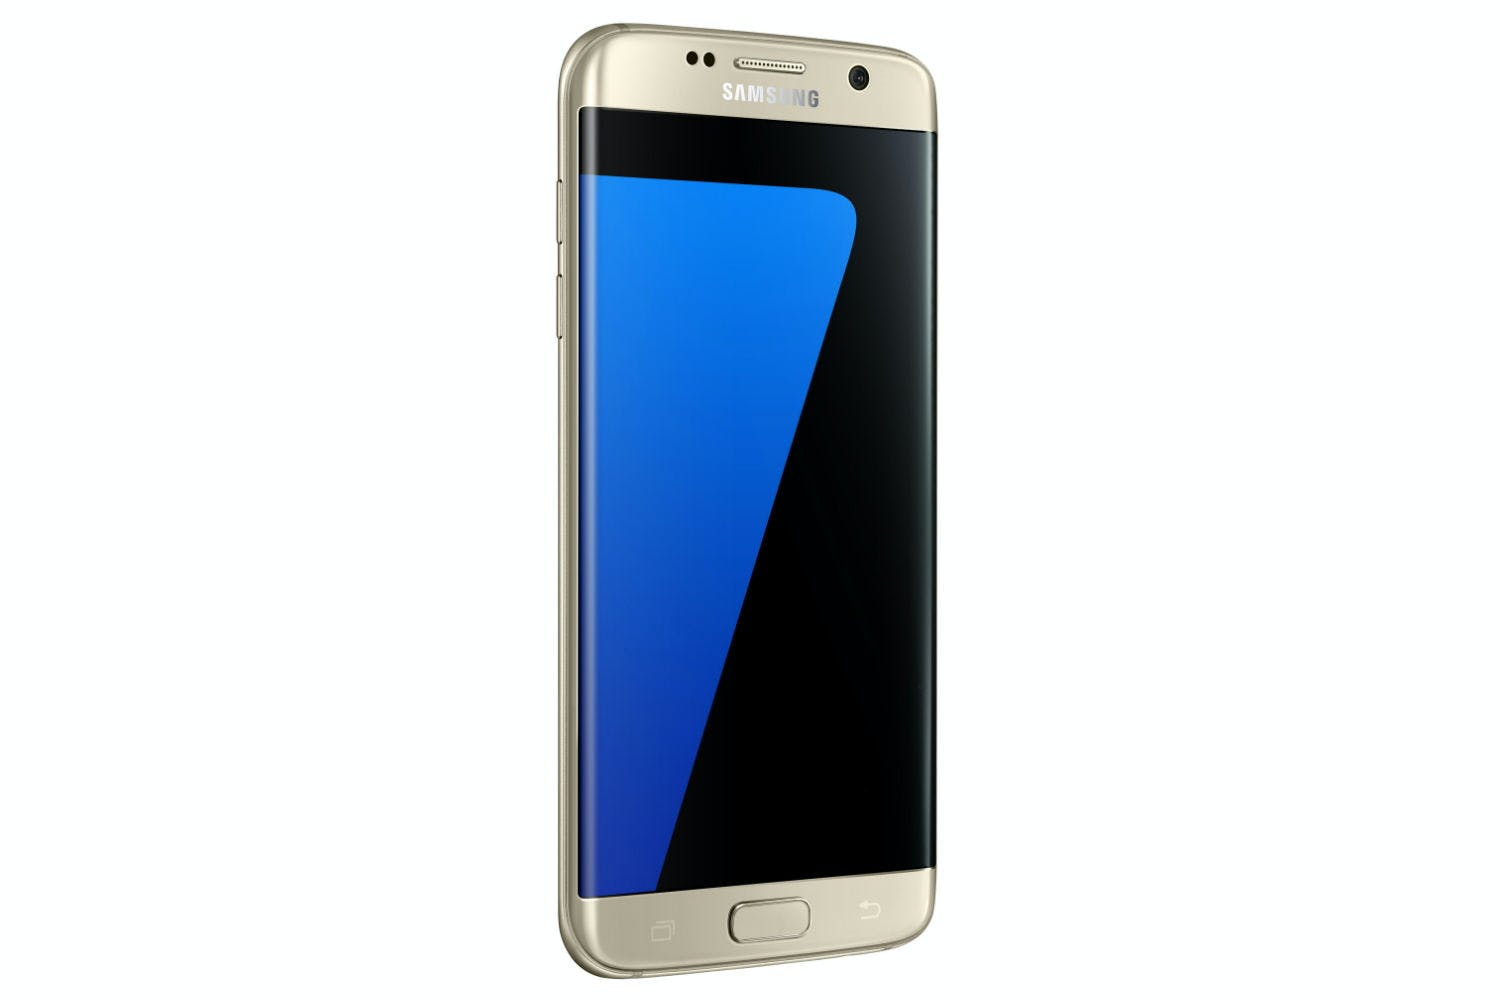 samsung galaxy s7 edge 32gb gold ireland. Black Bedroom Furniture Sets. Home Design Ideas